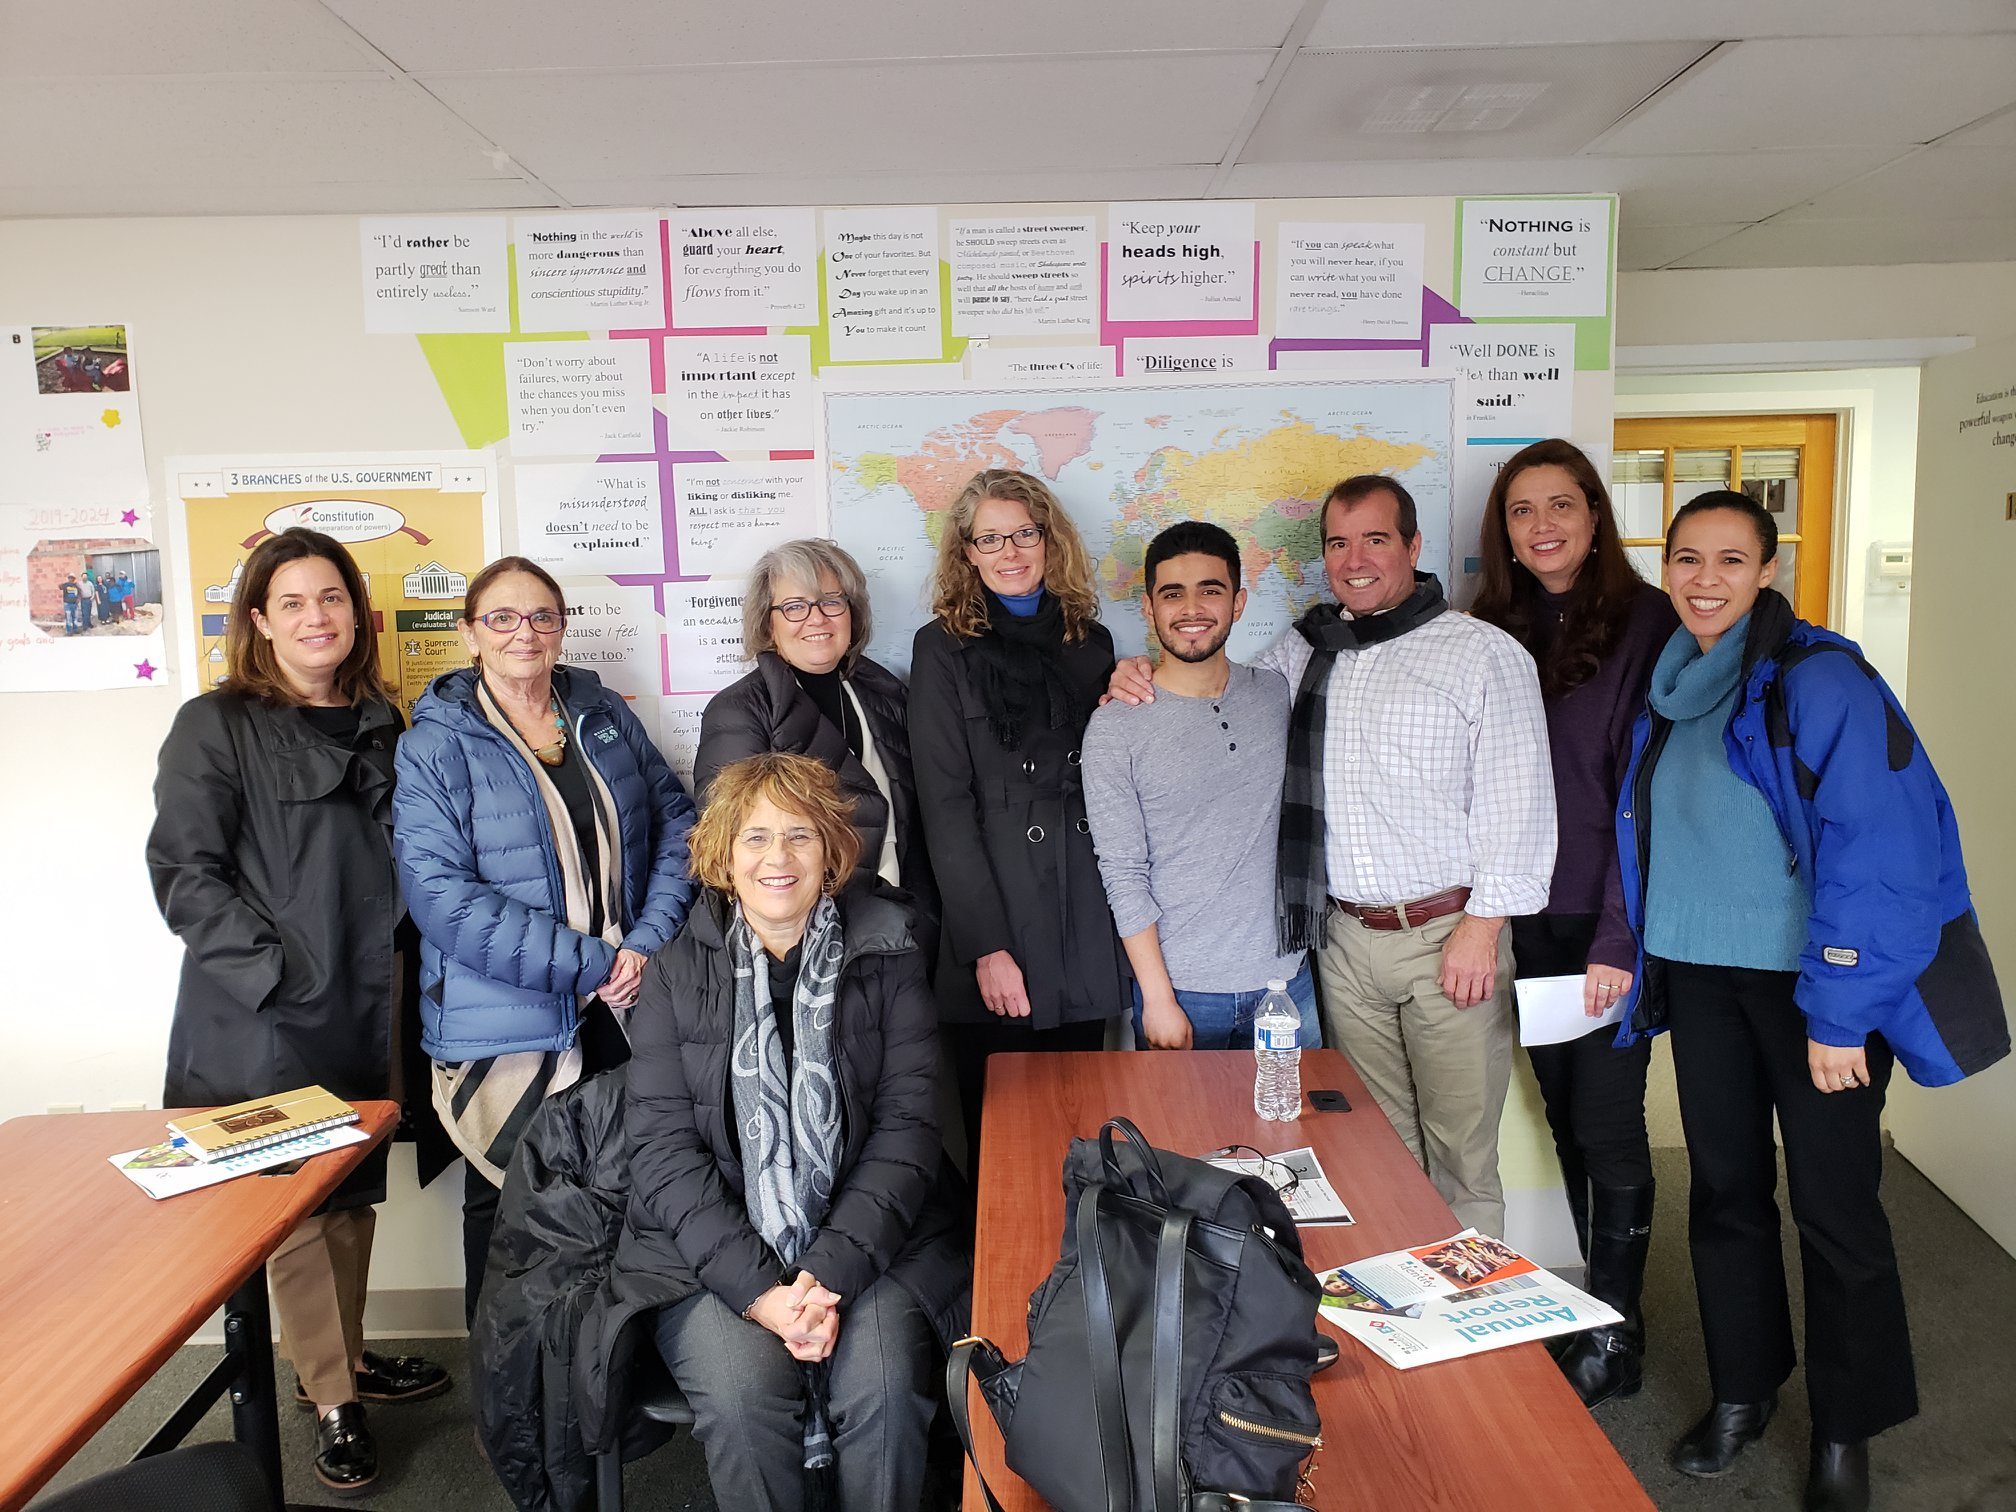 In November 2018, members of our Sharing Montgomery Committee visited the nonprofit Identity to   learn about its trauma-informed, positive youth development approach to serving 3,000 Latino youth and families.